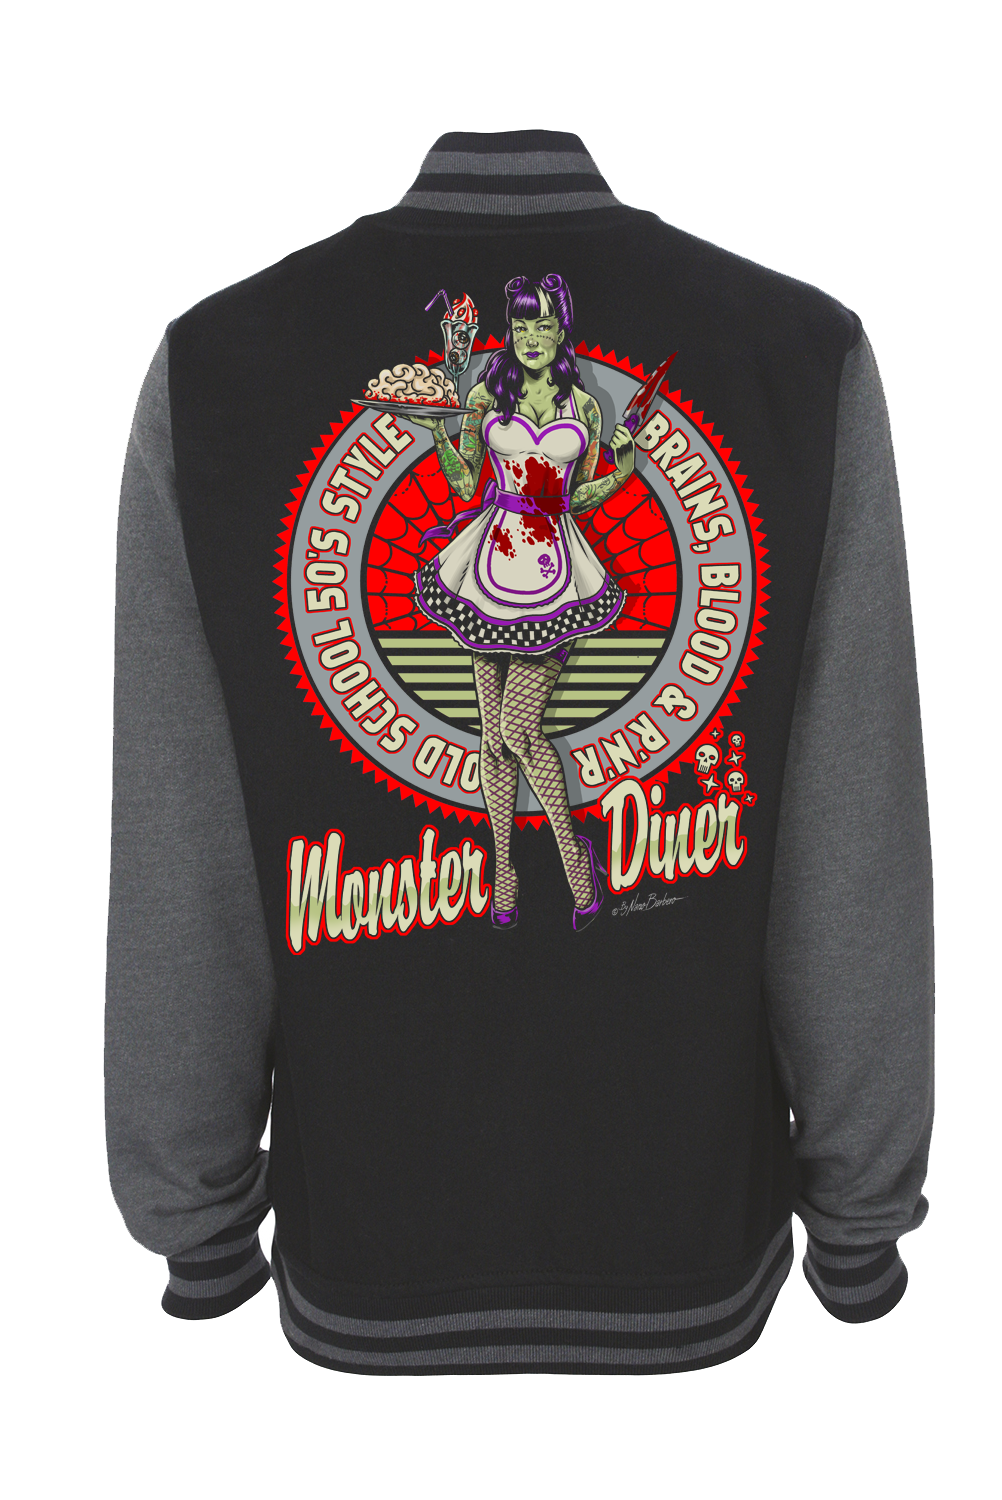 MONSTER DINER VARSITY JACKET UNISEX BY NANO BARBERO